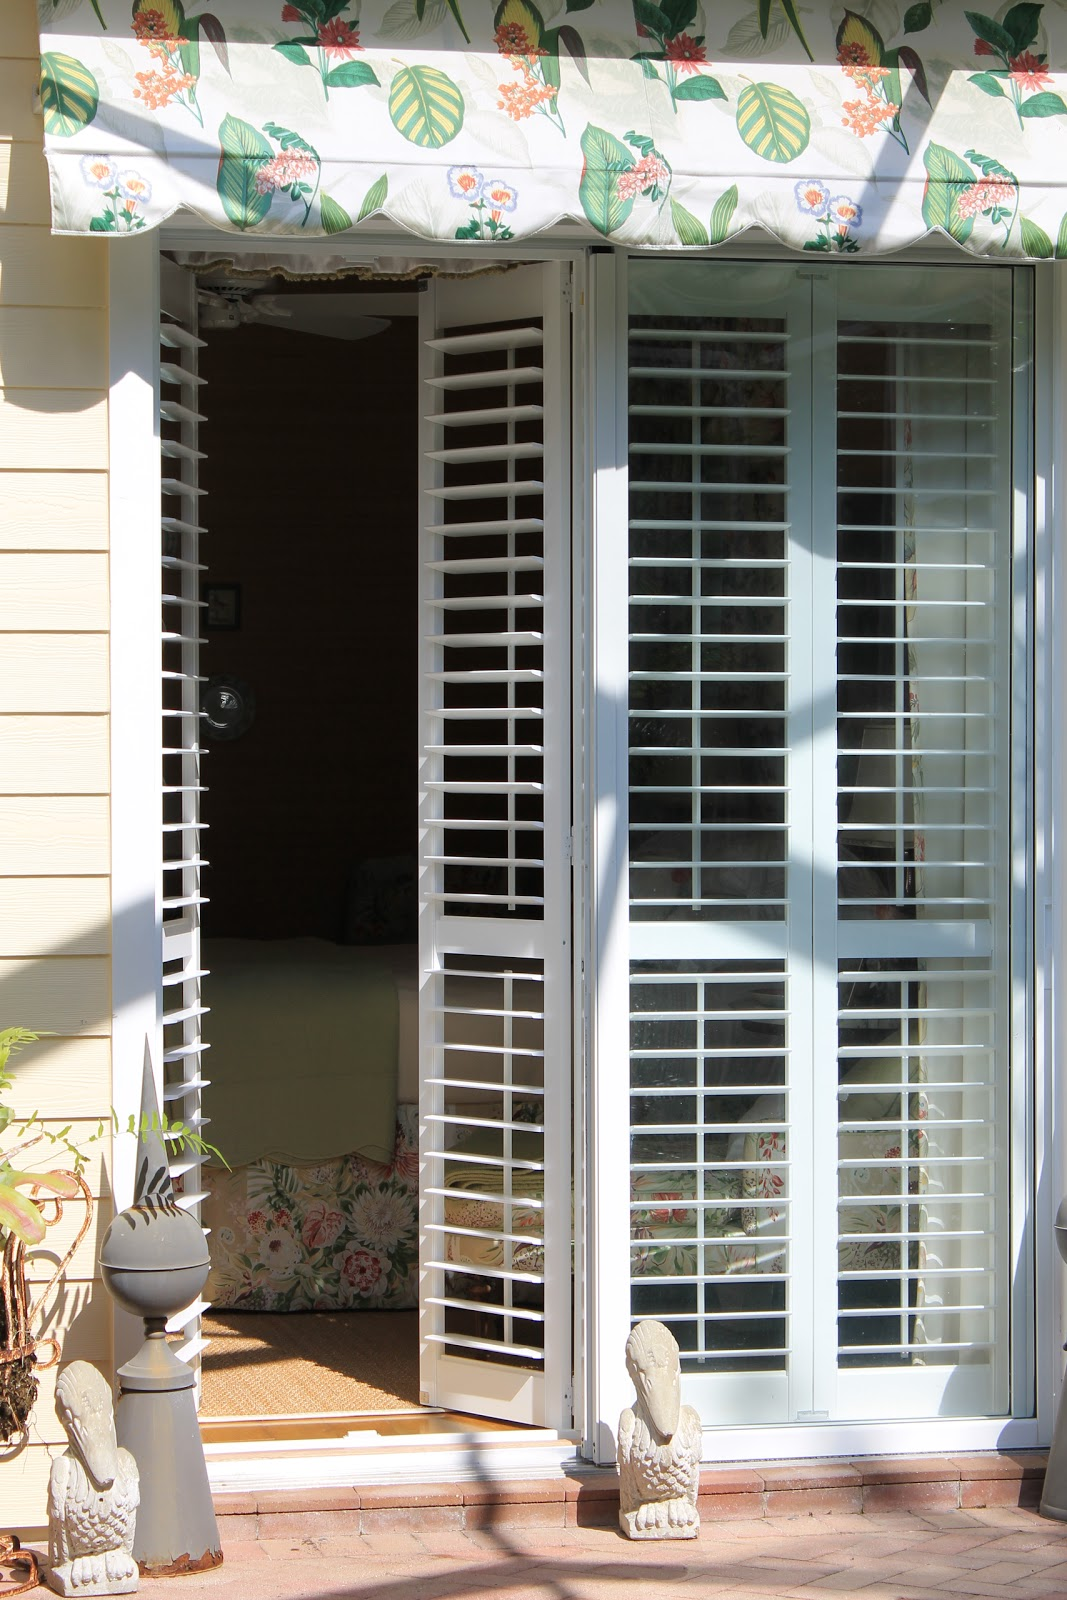 Betsy Speerts Blog Plantation Shutters On Sliders A Close Up View